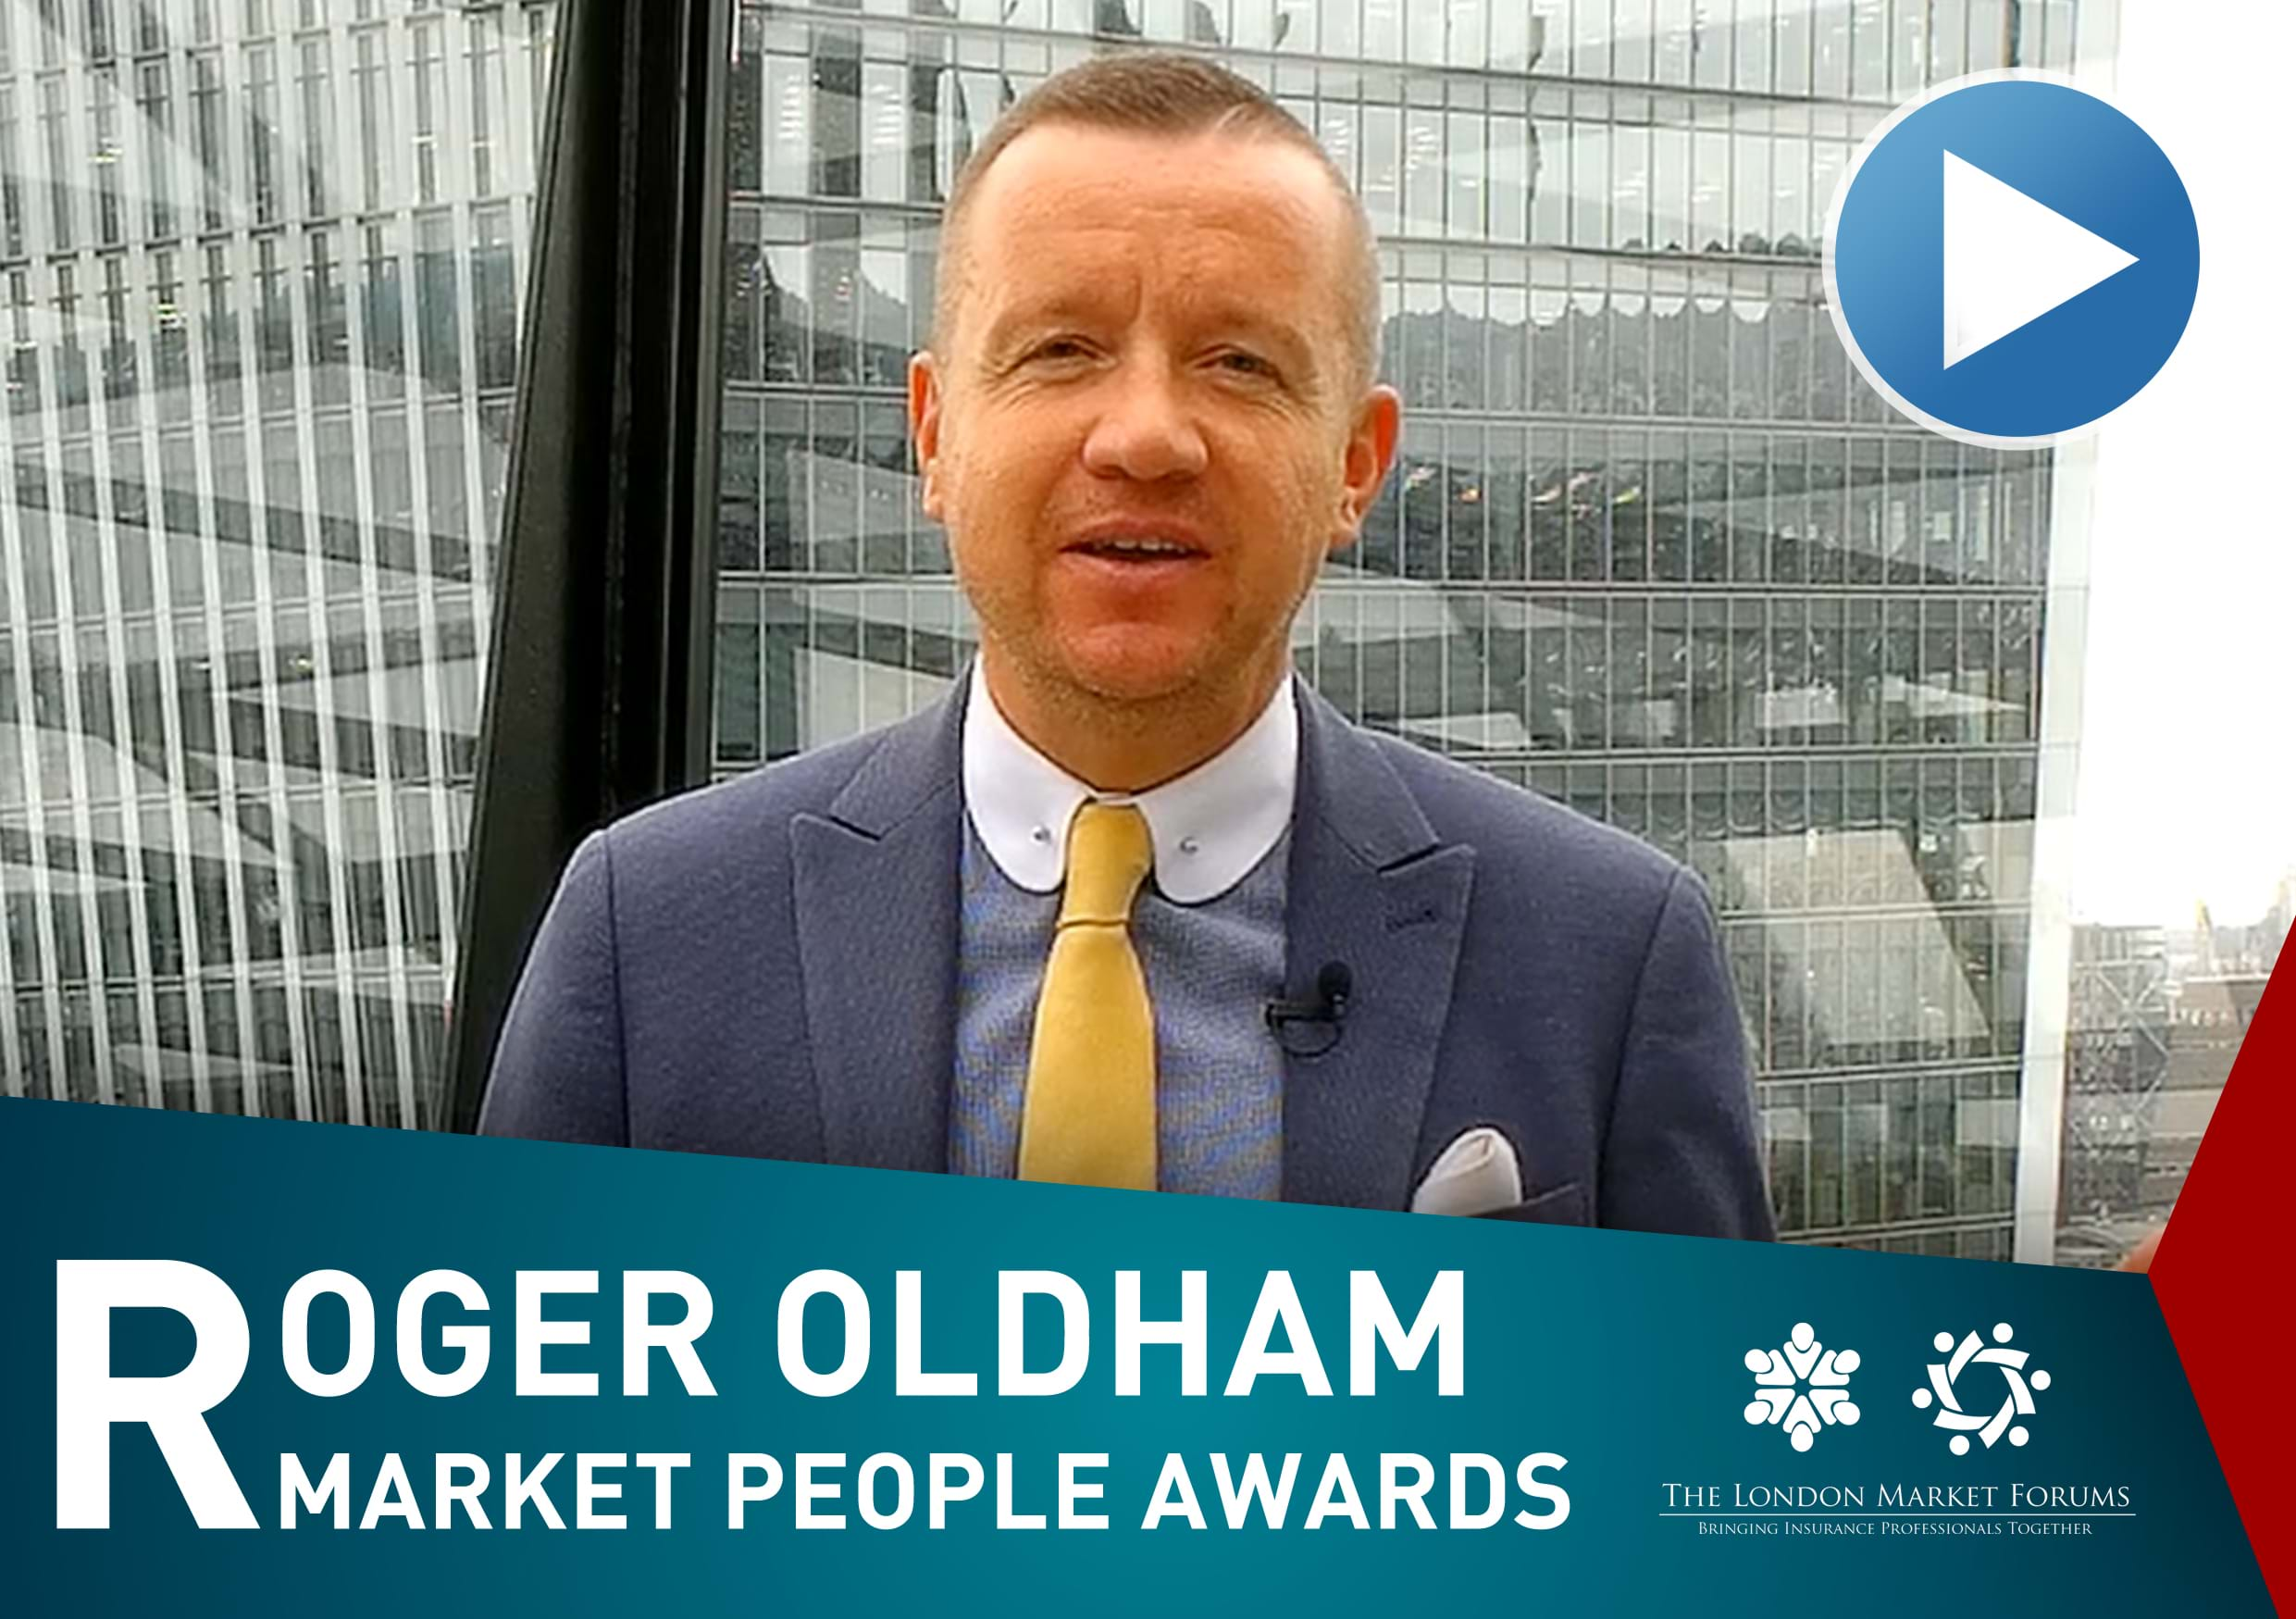 Roger Oldham on the Market People Awards 2019